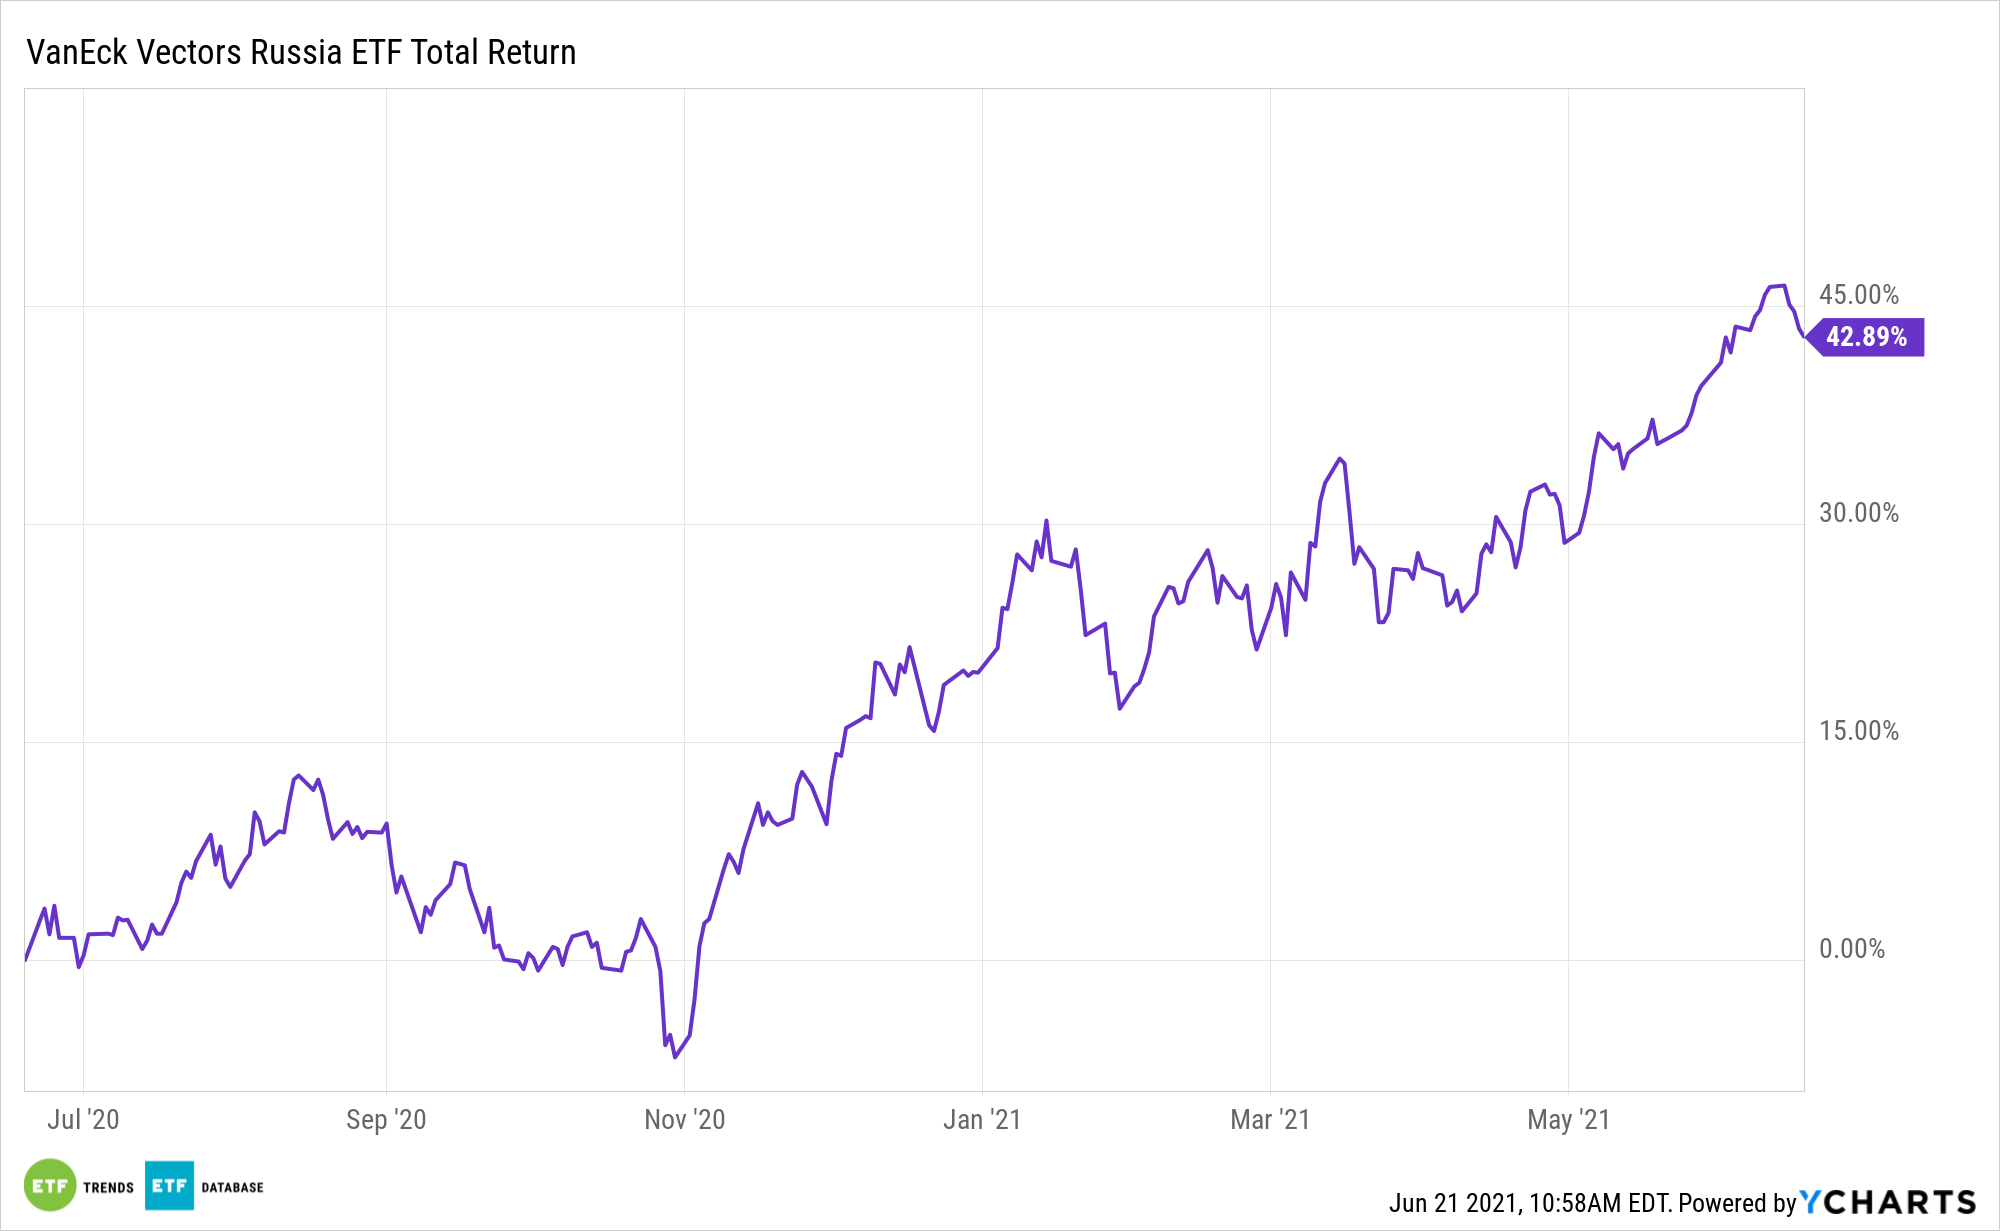 RSX 1 Year Performance